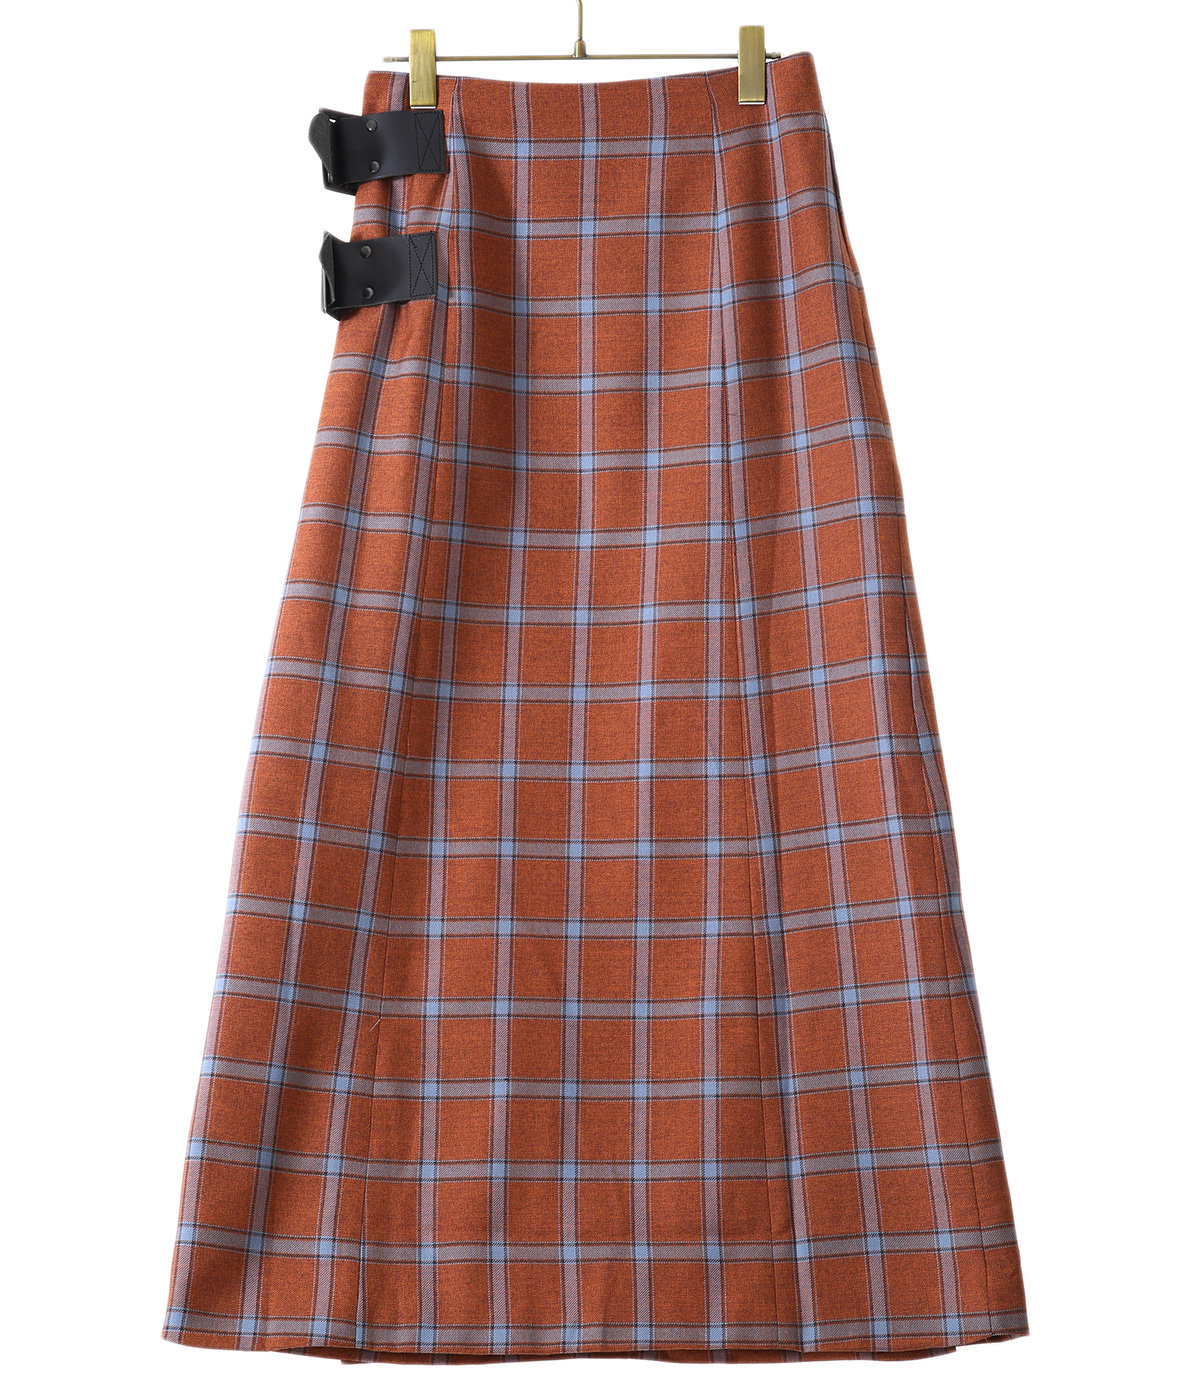 【レディース】Wrap Skirt - Plaid Twill